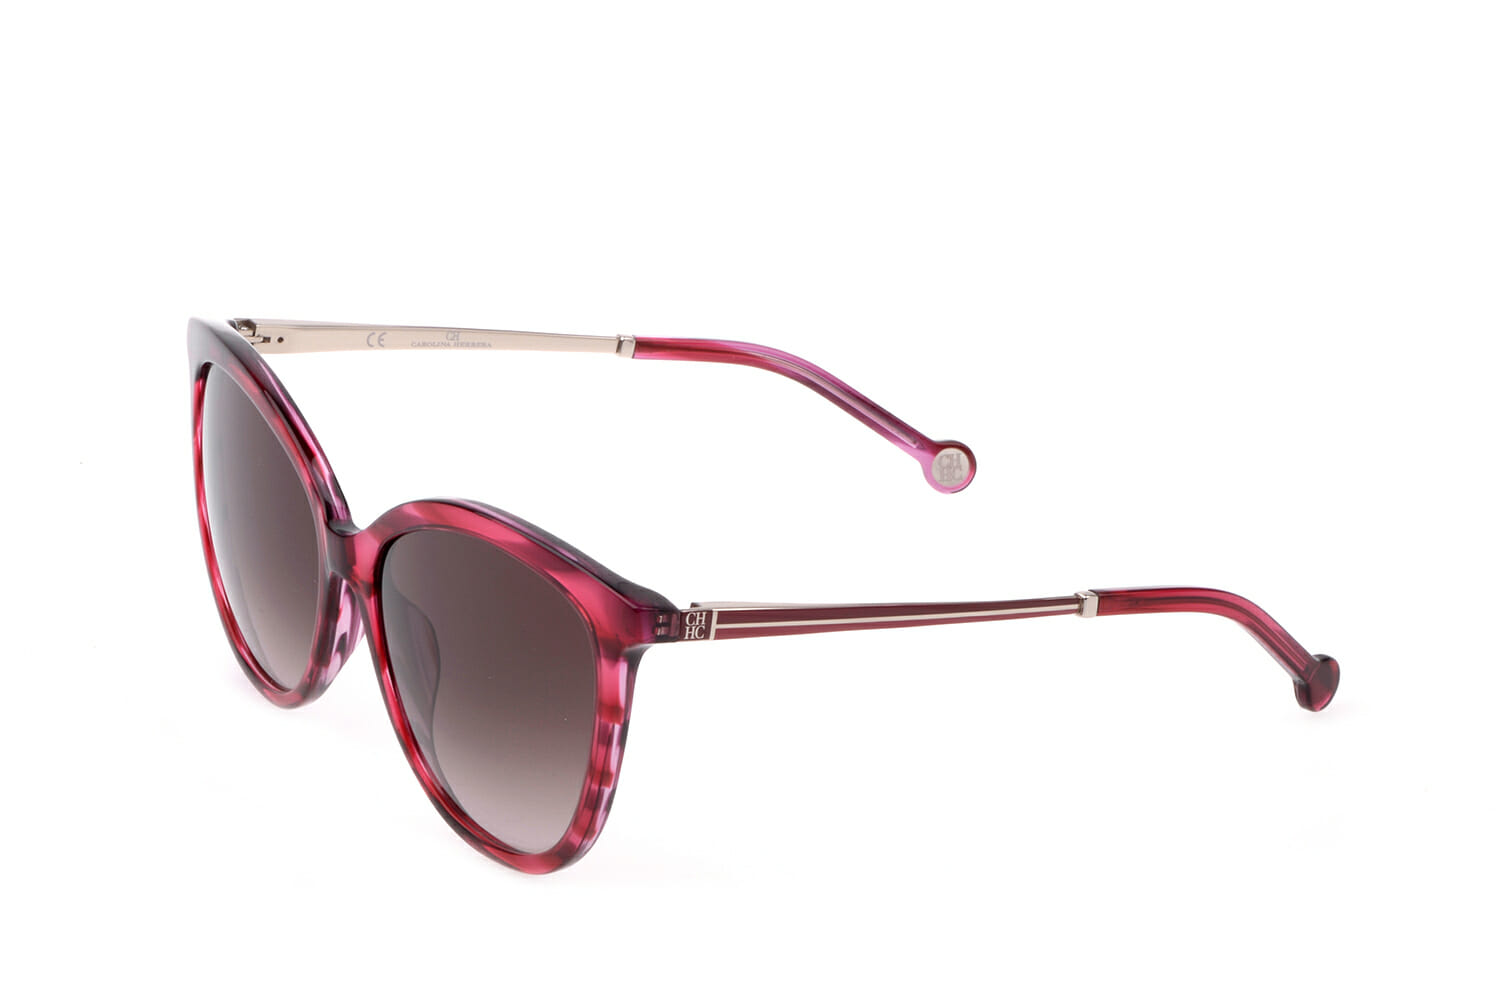 ch carolina herrera eyewear SIDE